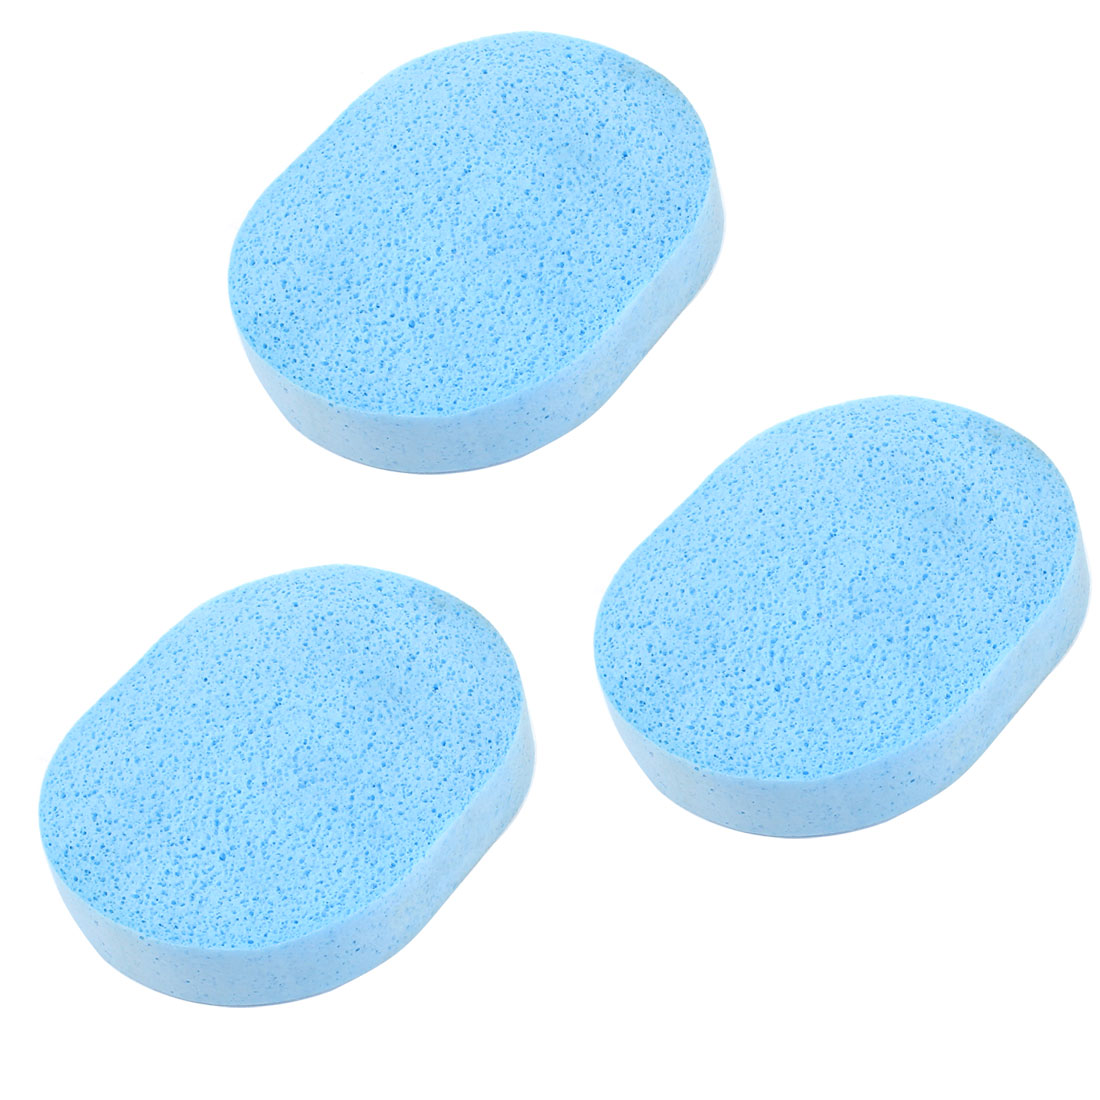 Blue Oval Make Up Facial Face Washing Cleansing Sponge Puff 3 Pcs